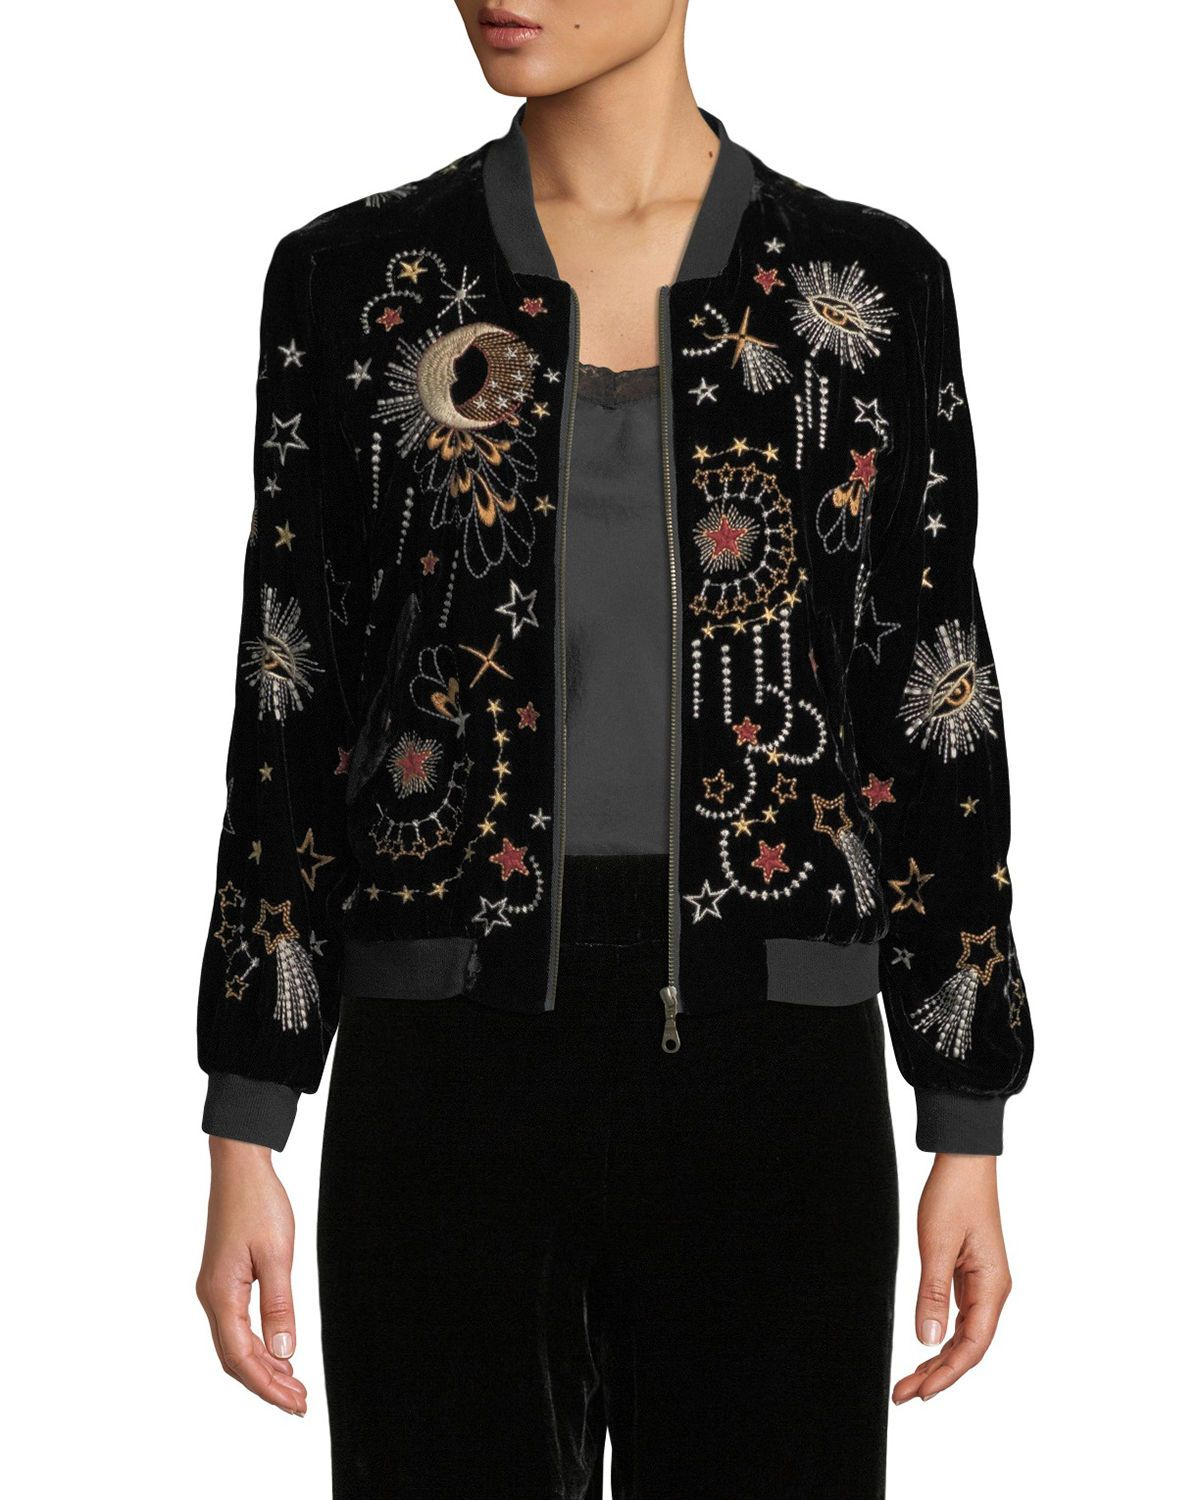 9be1a91f20c Johnny Was Clothing at Neiman Marcus | Style in 2019 | Velvet bomber ...